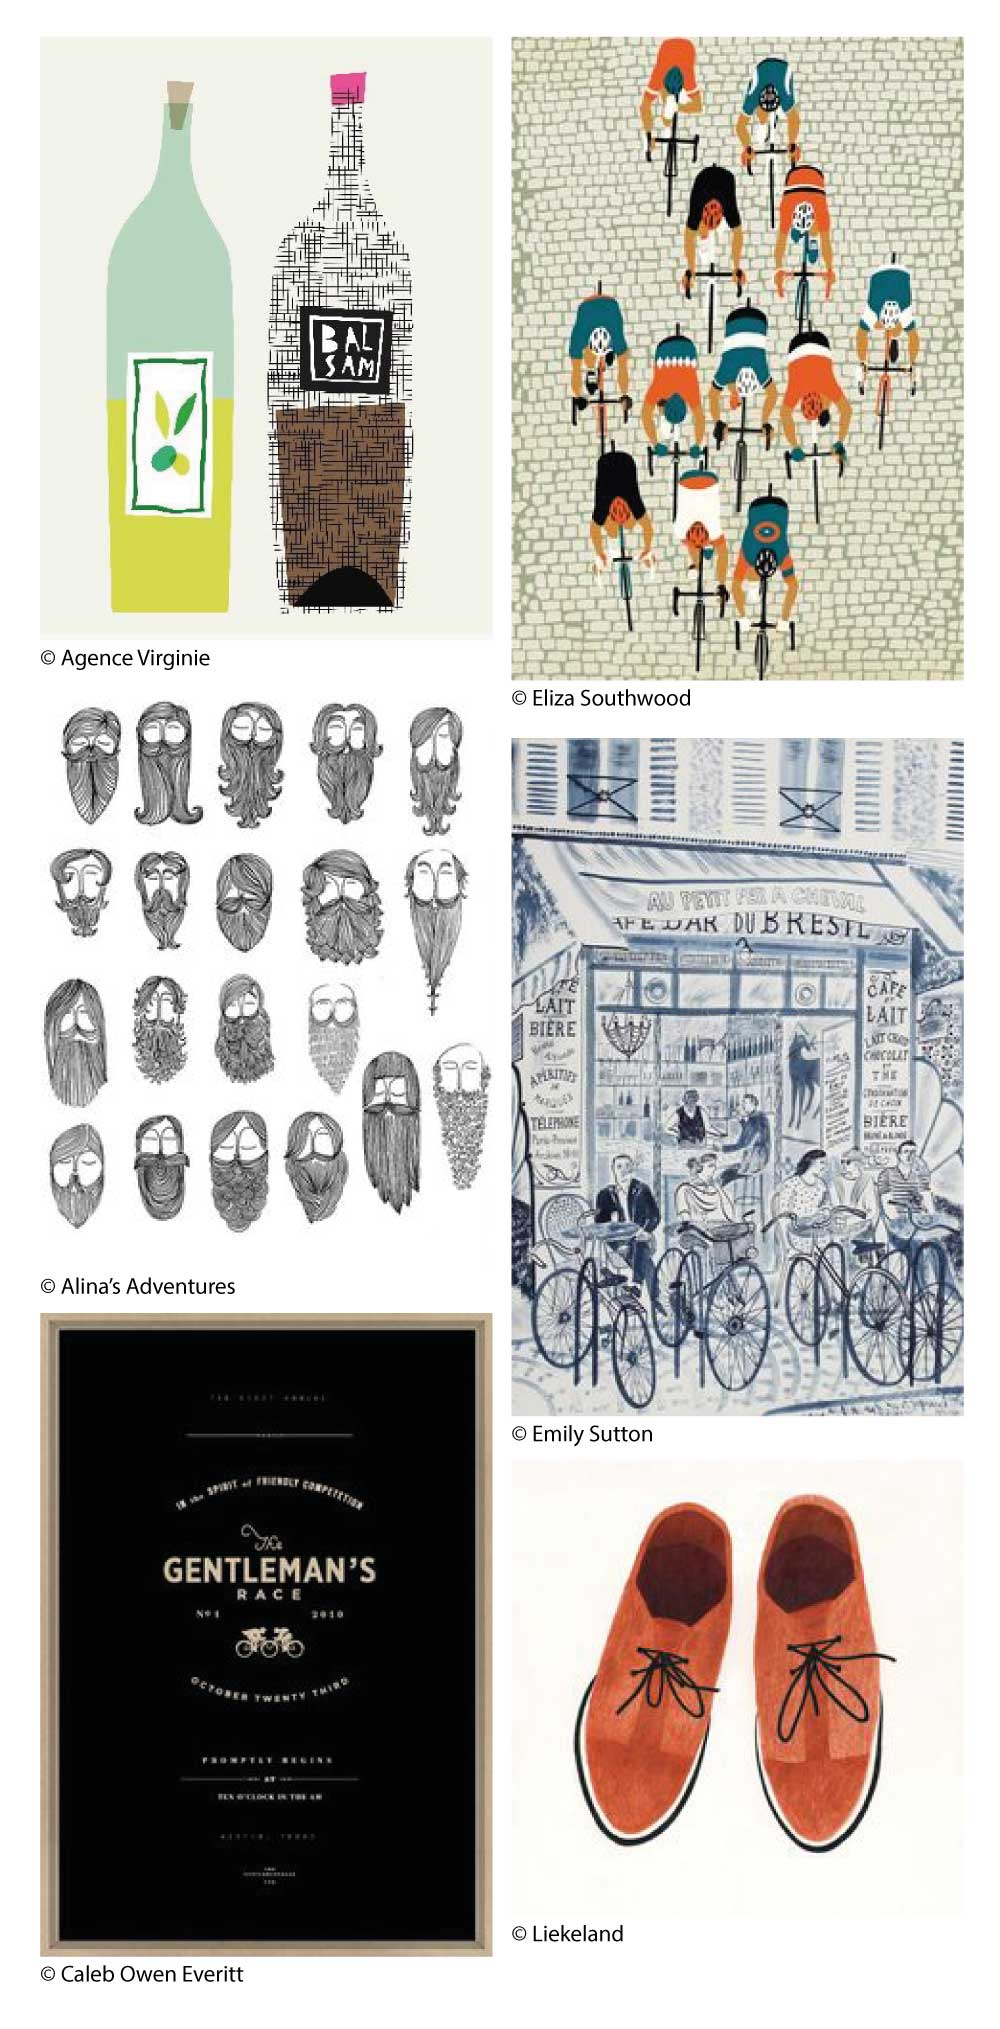 All images above for illustration inspiration only - not the property of Gifted?/Hallmark